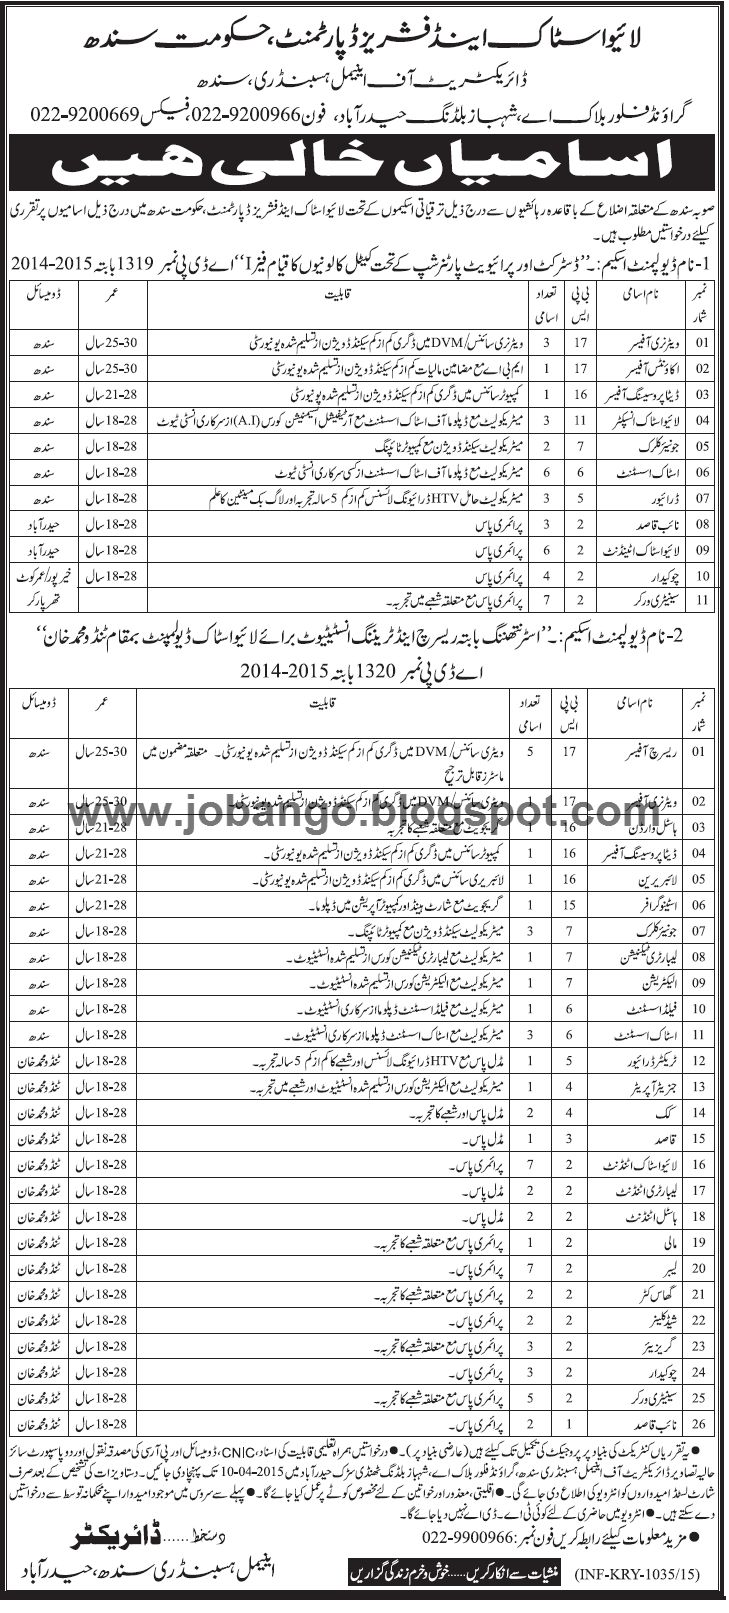 LAST DATE 10-05-2015   Live Stock And Fisheries Department Government of Sindh   Matric/Middle/Primary/Inter/Graduate/B.A/MBA/Librarian Jobs Will Be On Contract Basis After Completion Of Contract Government Is Not responsible For Providing Jobs To Every Person  www.facebook.com/jobangos  http://jobango.blogspot.com/2015/03/live-stock-department.html